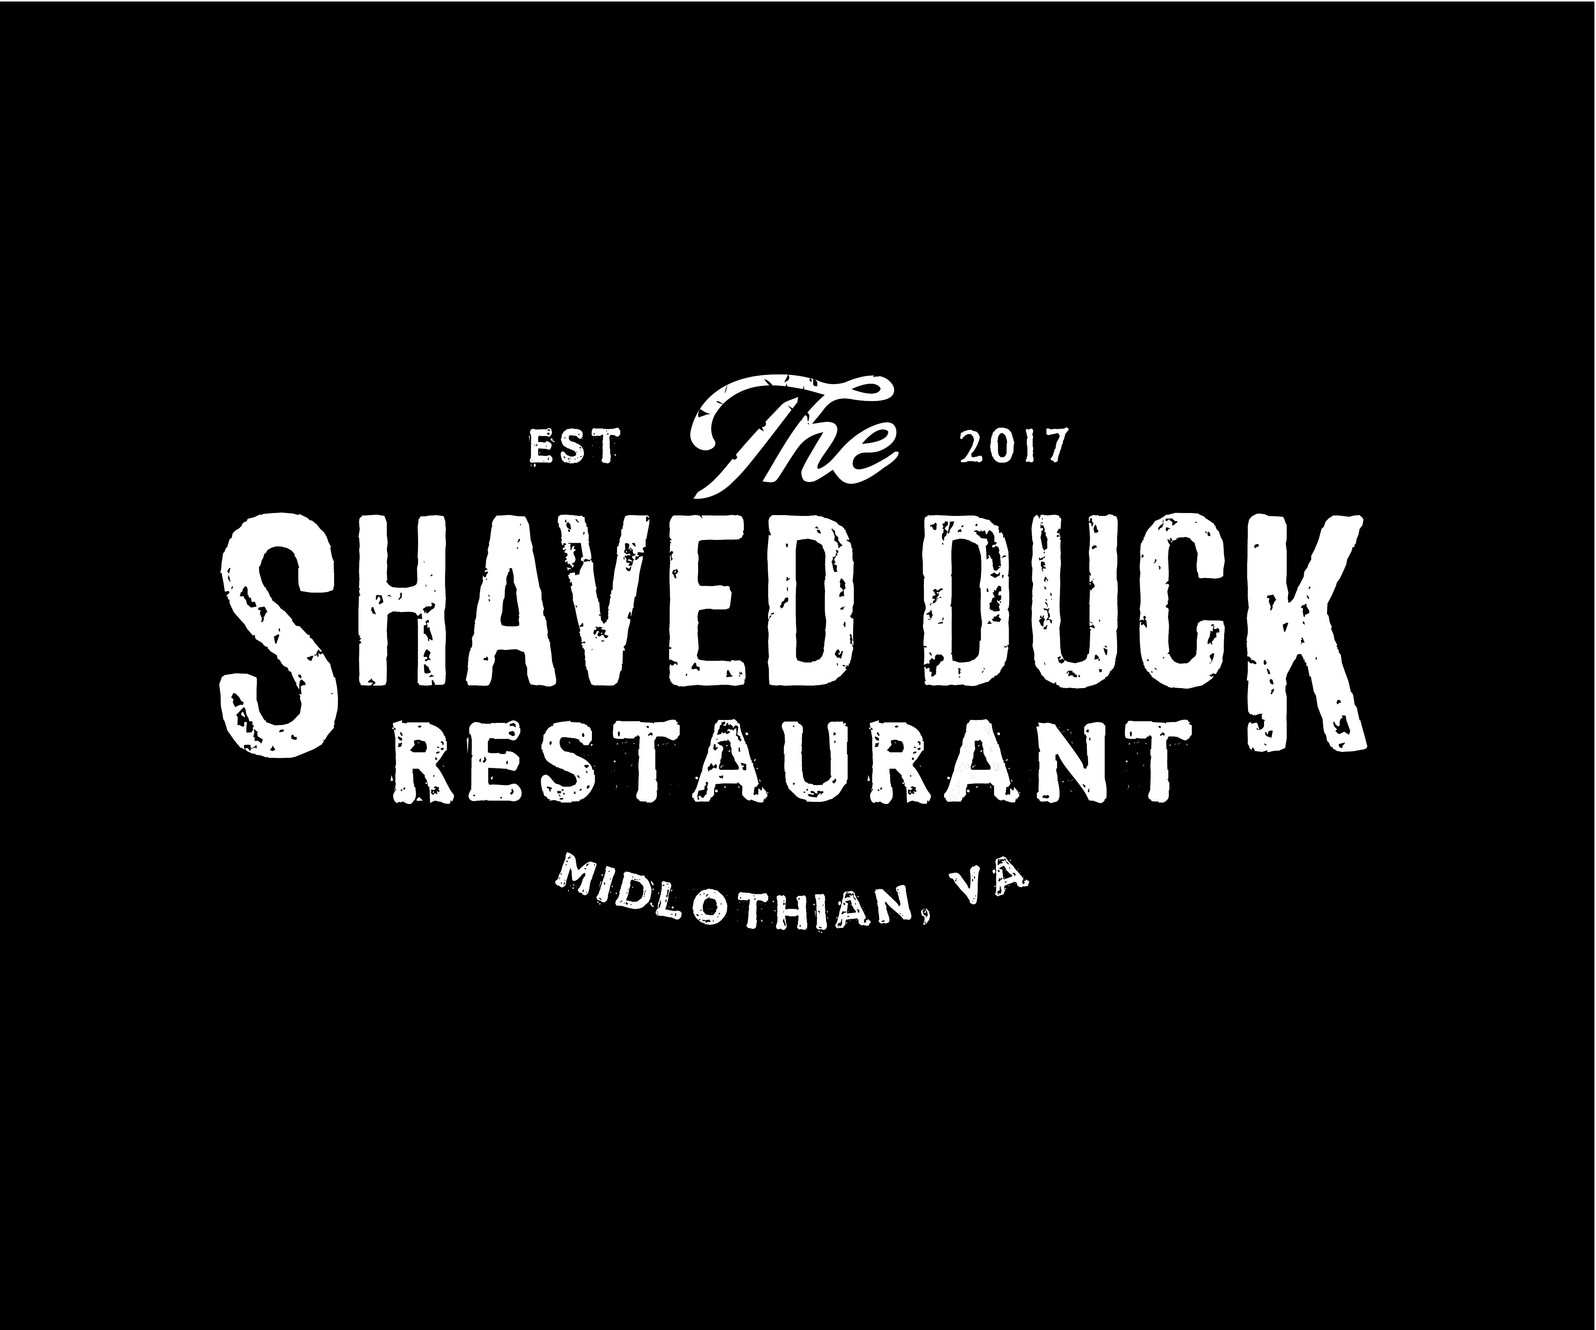 The Shaved Duck Restaurant Midlothian Va